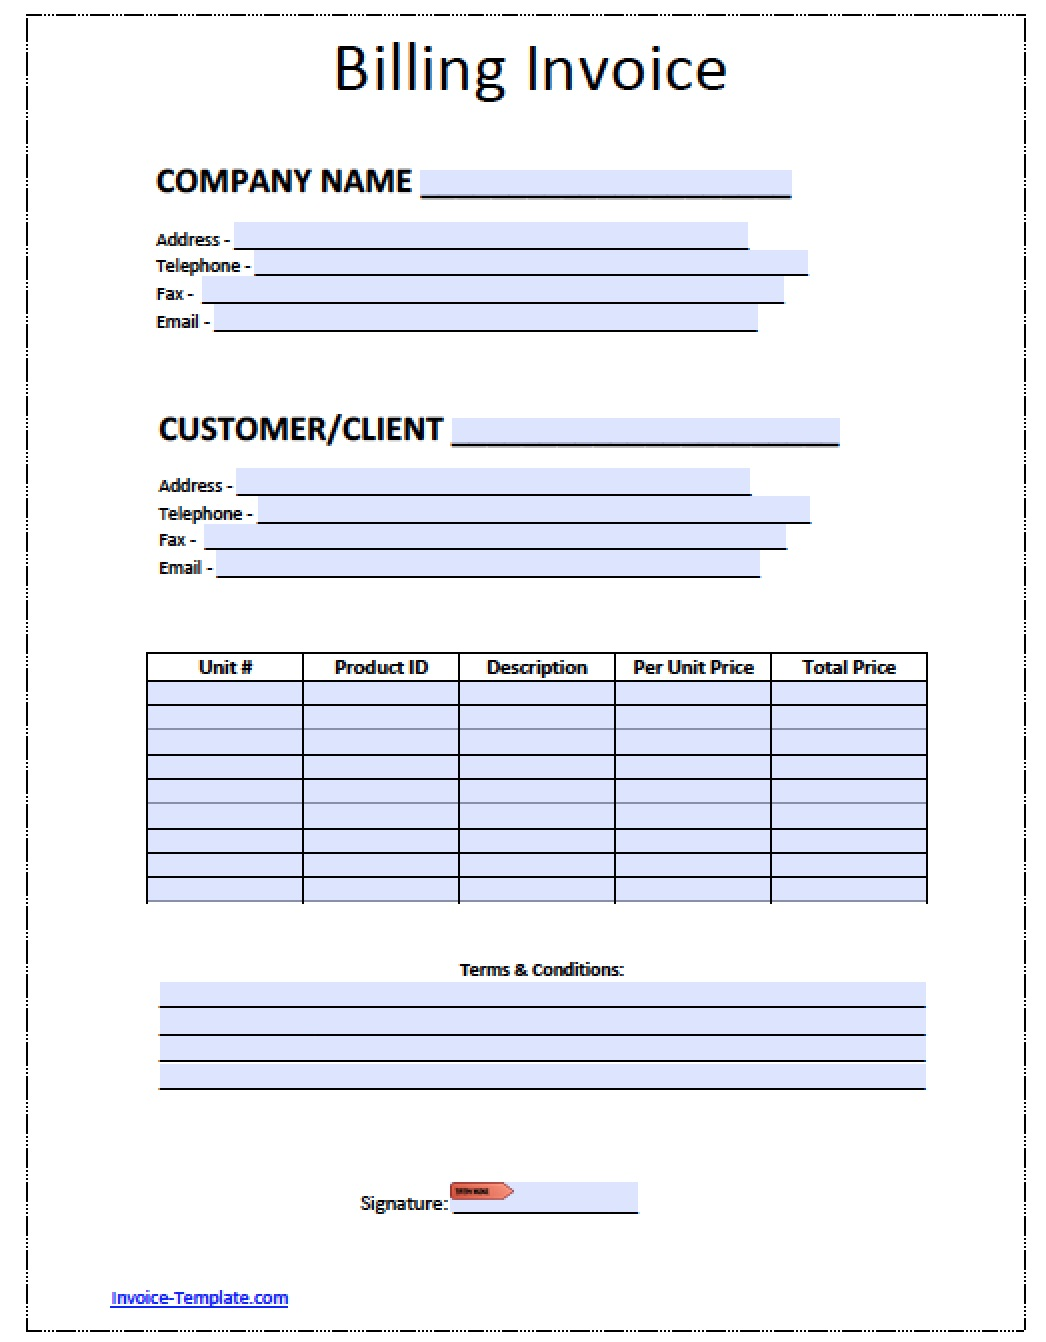 Hucareus  Nice Billing Invoice Invoices Faq U Cloudflare Support Billing  With Lovely Free Billing Invoice Template  Excel  Pdf  Word Doc  Billing With Astounding Invoice Method Also Gst Tax Invoice In Addition Accounts Invoice And How To Invoice For Services As Well As Invoice Sample Form Additionally Print Invoices Online Free From Happytomco With Hucareus  Lovely Billing Invoice Invoices Faq U Cloudflare Support Billing  With Astounding Free Billing Invoice Template  Excel  Pdf  Word Doc  Billing And Nice Invoice Method Also Gst Tax Invoice In Addition Accounts Invoice From Happytomco